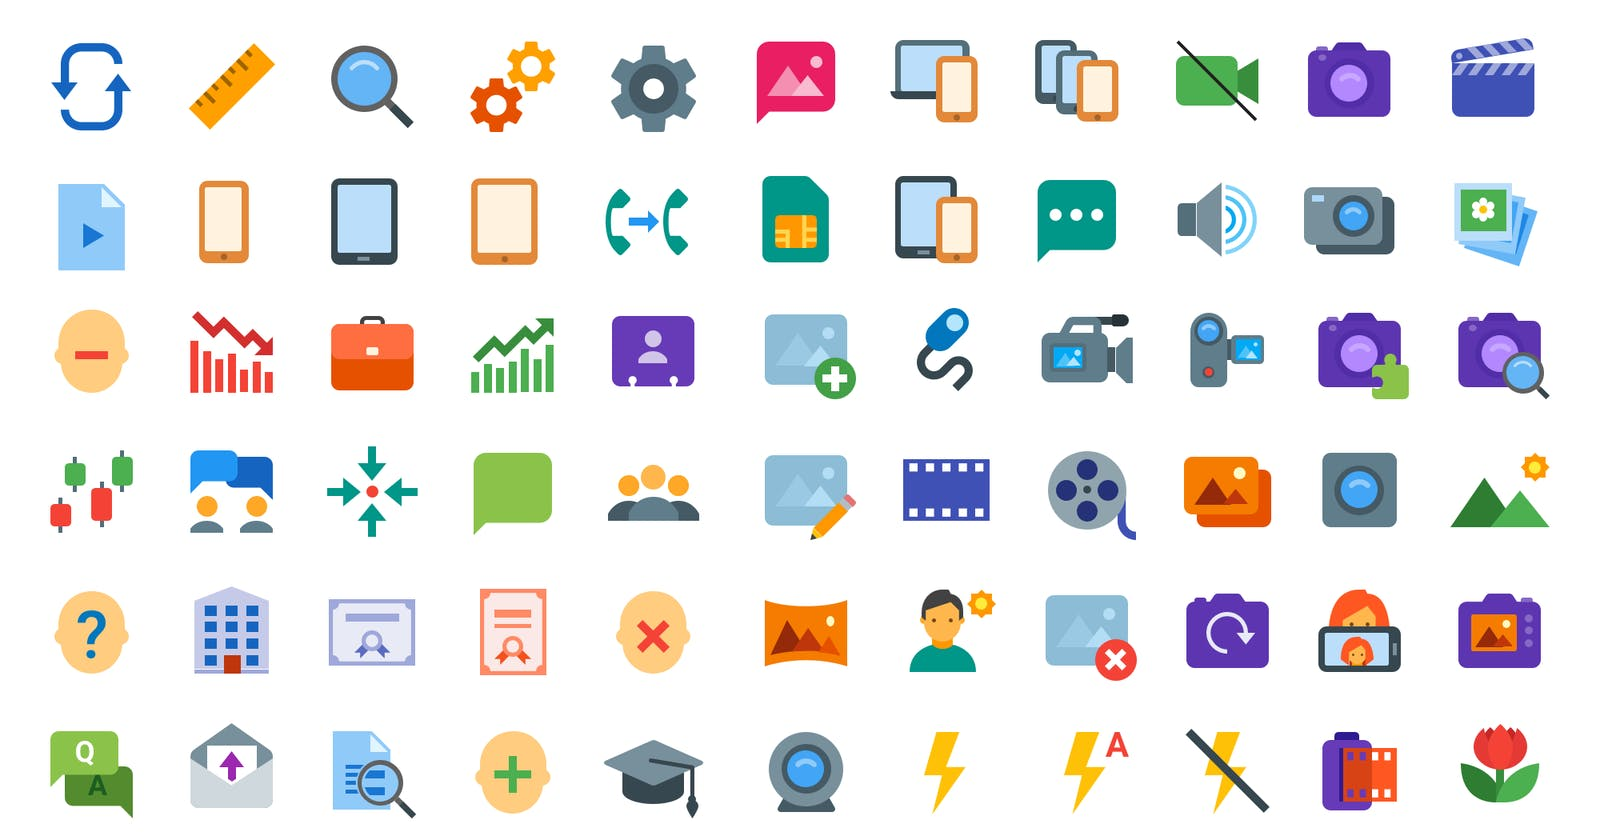 Icon systems for the web - an in-depth guide